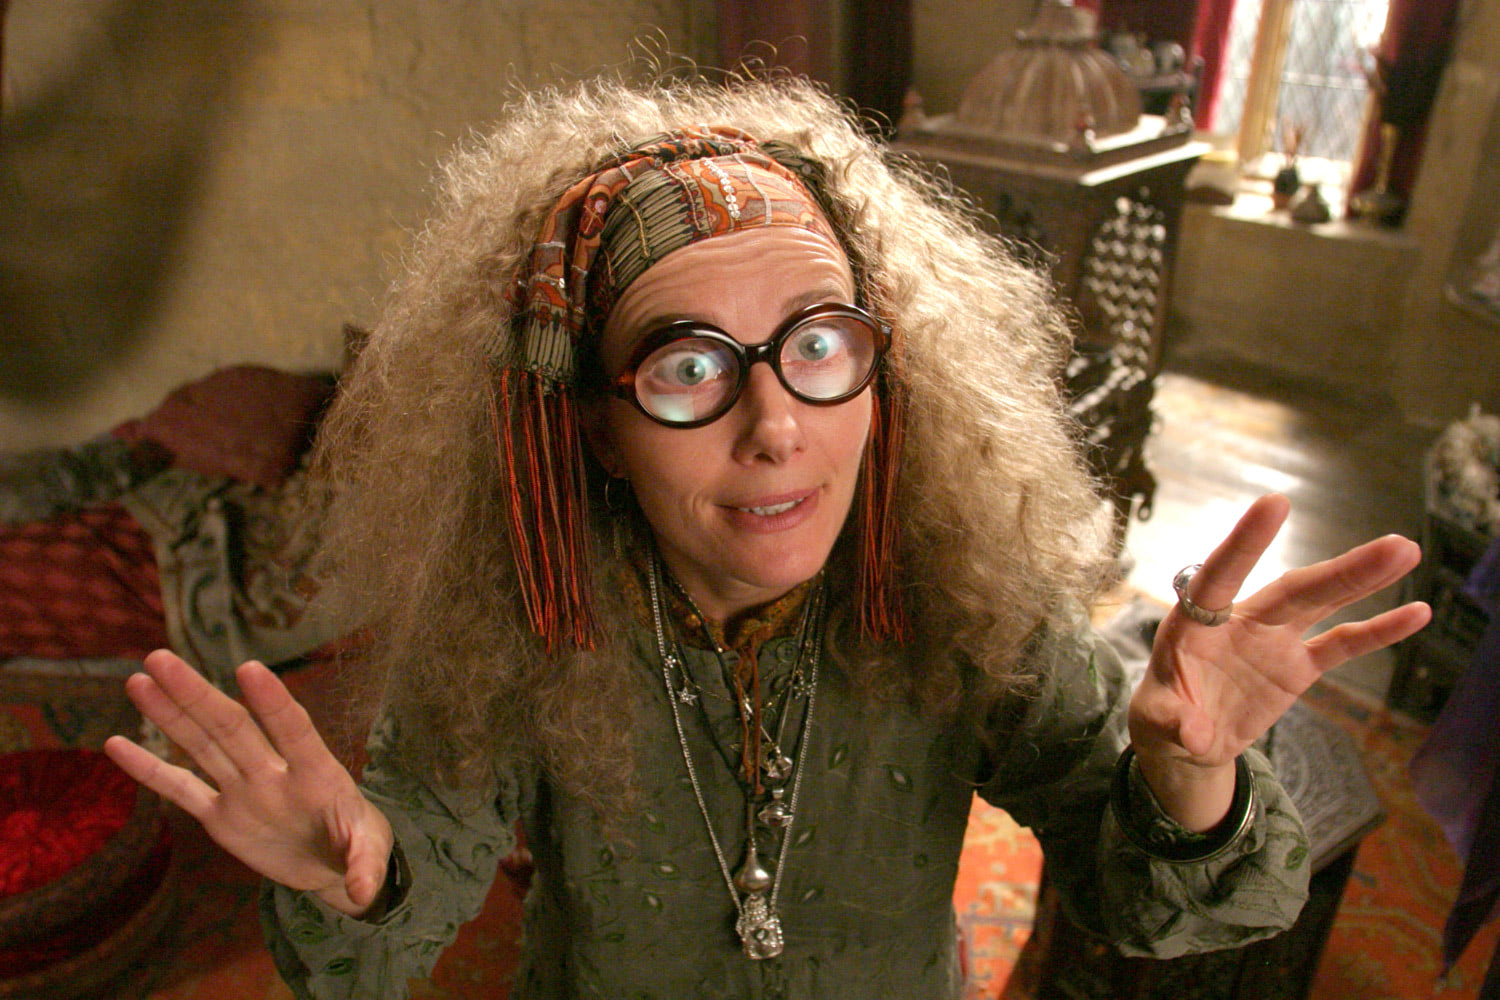 Professor Trelawney in Divination